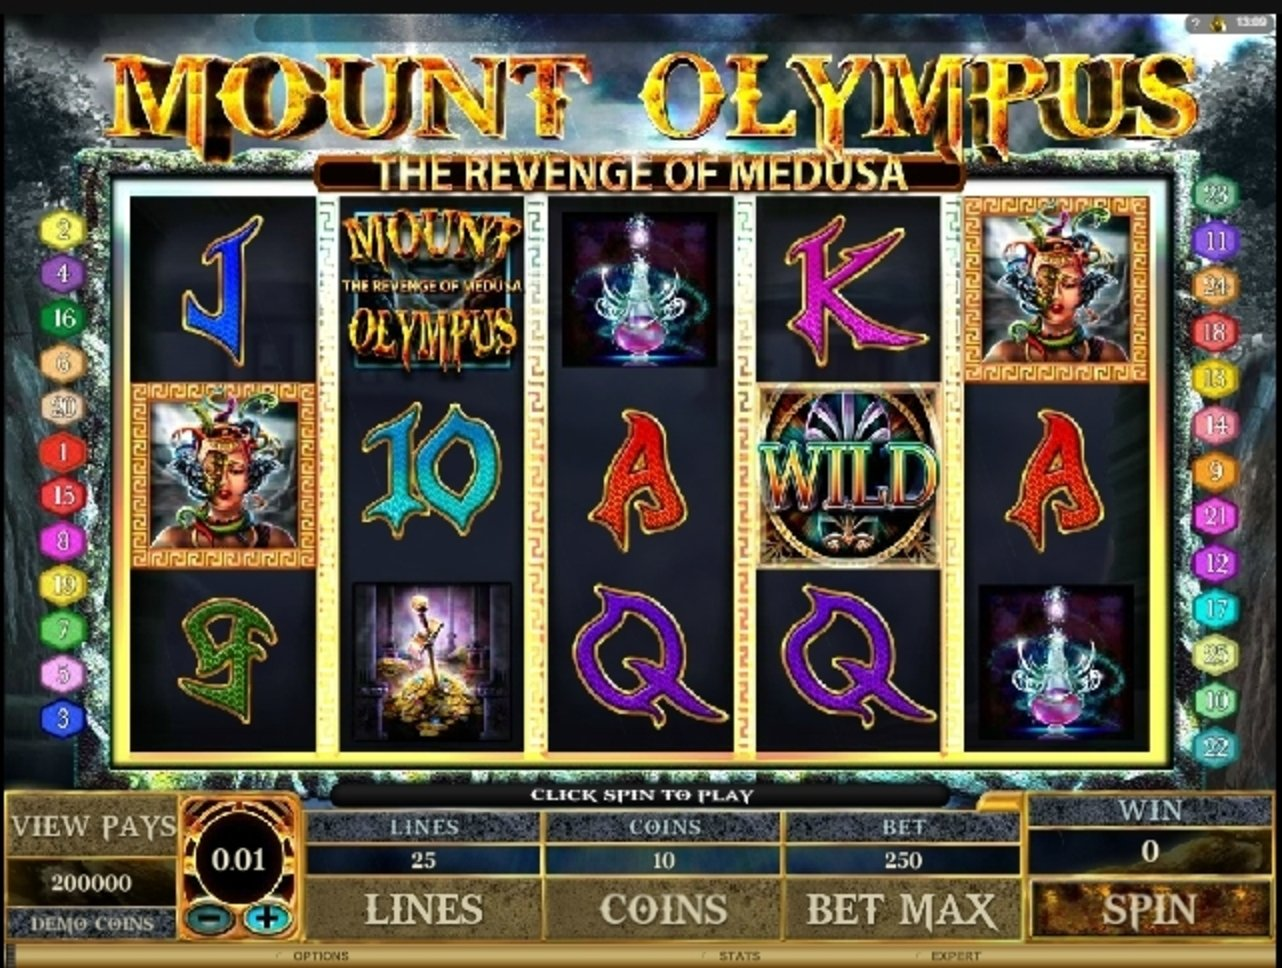 Reels in Mount Olympus Slot Game by Microgaming